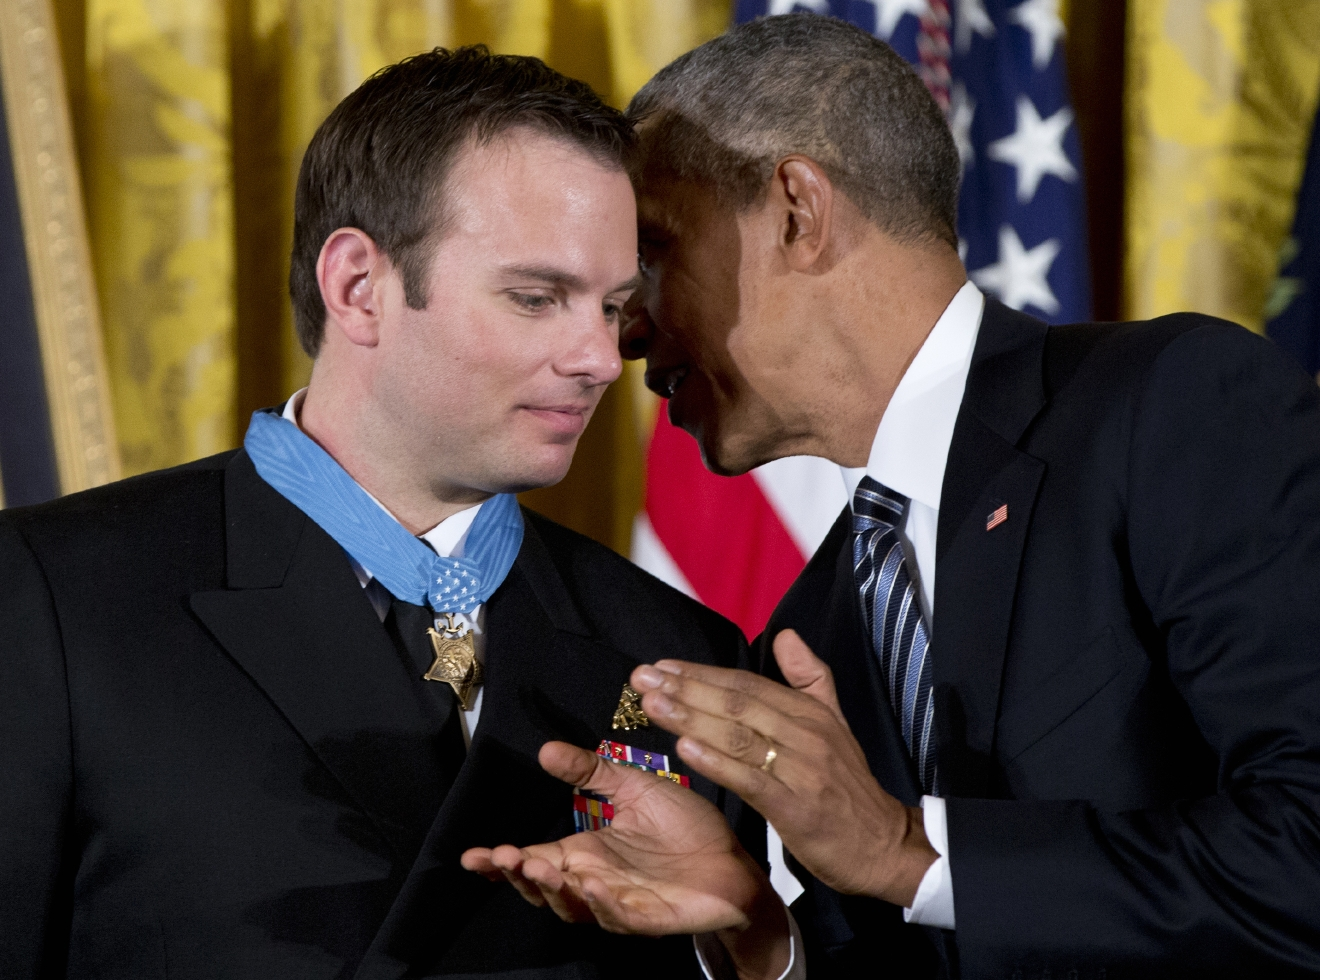 President Barack Obama applauds and leans into talk to Senior Chief Special Warfare Operator Edward Byers after presenting him with the Medal of Honor during a ceremony in the East Room of the White House in Washington, Monday, Feb. 29, 2016. U.S. Navy. Senior Chief Byers received the Medal of Honor for his courageous actions while serving as part of a team that rescued an American civilian being held hostage in Afghanistan on December 8-9, 2012. (AP Photo/Carolyn Kaster)